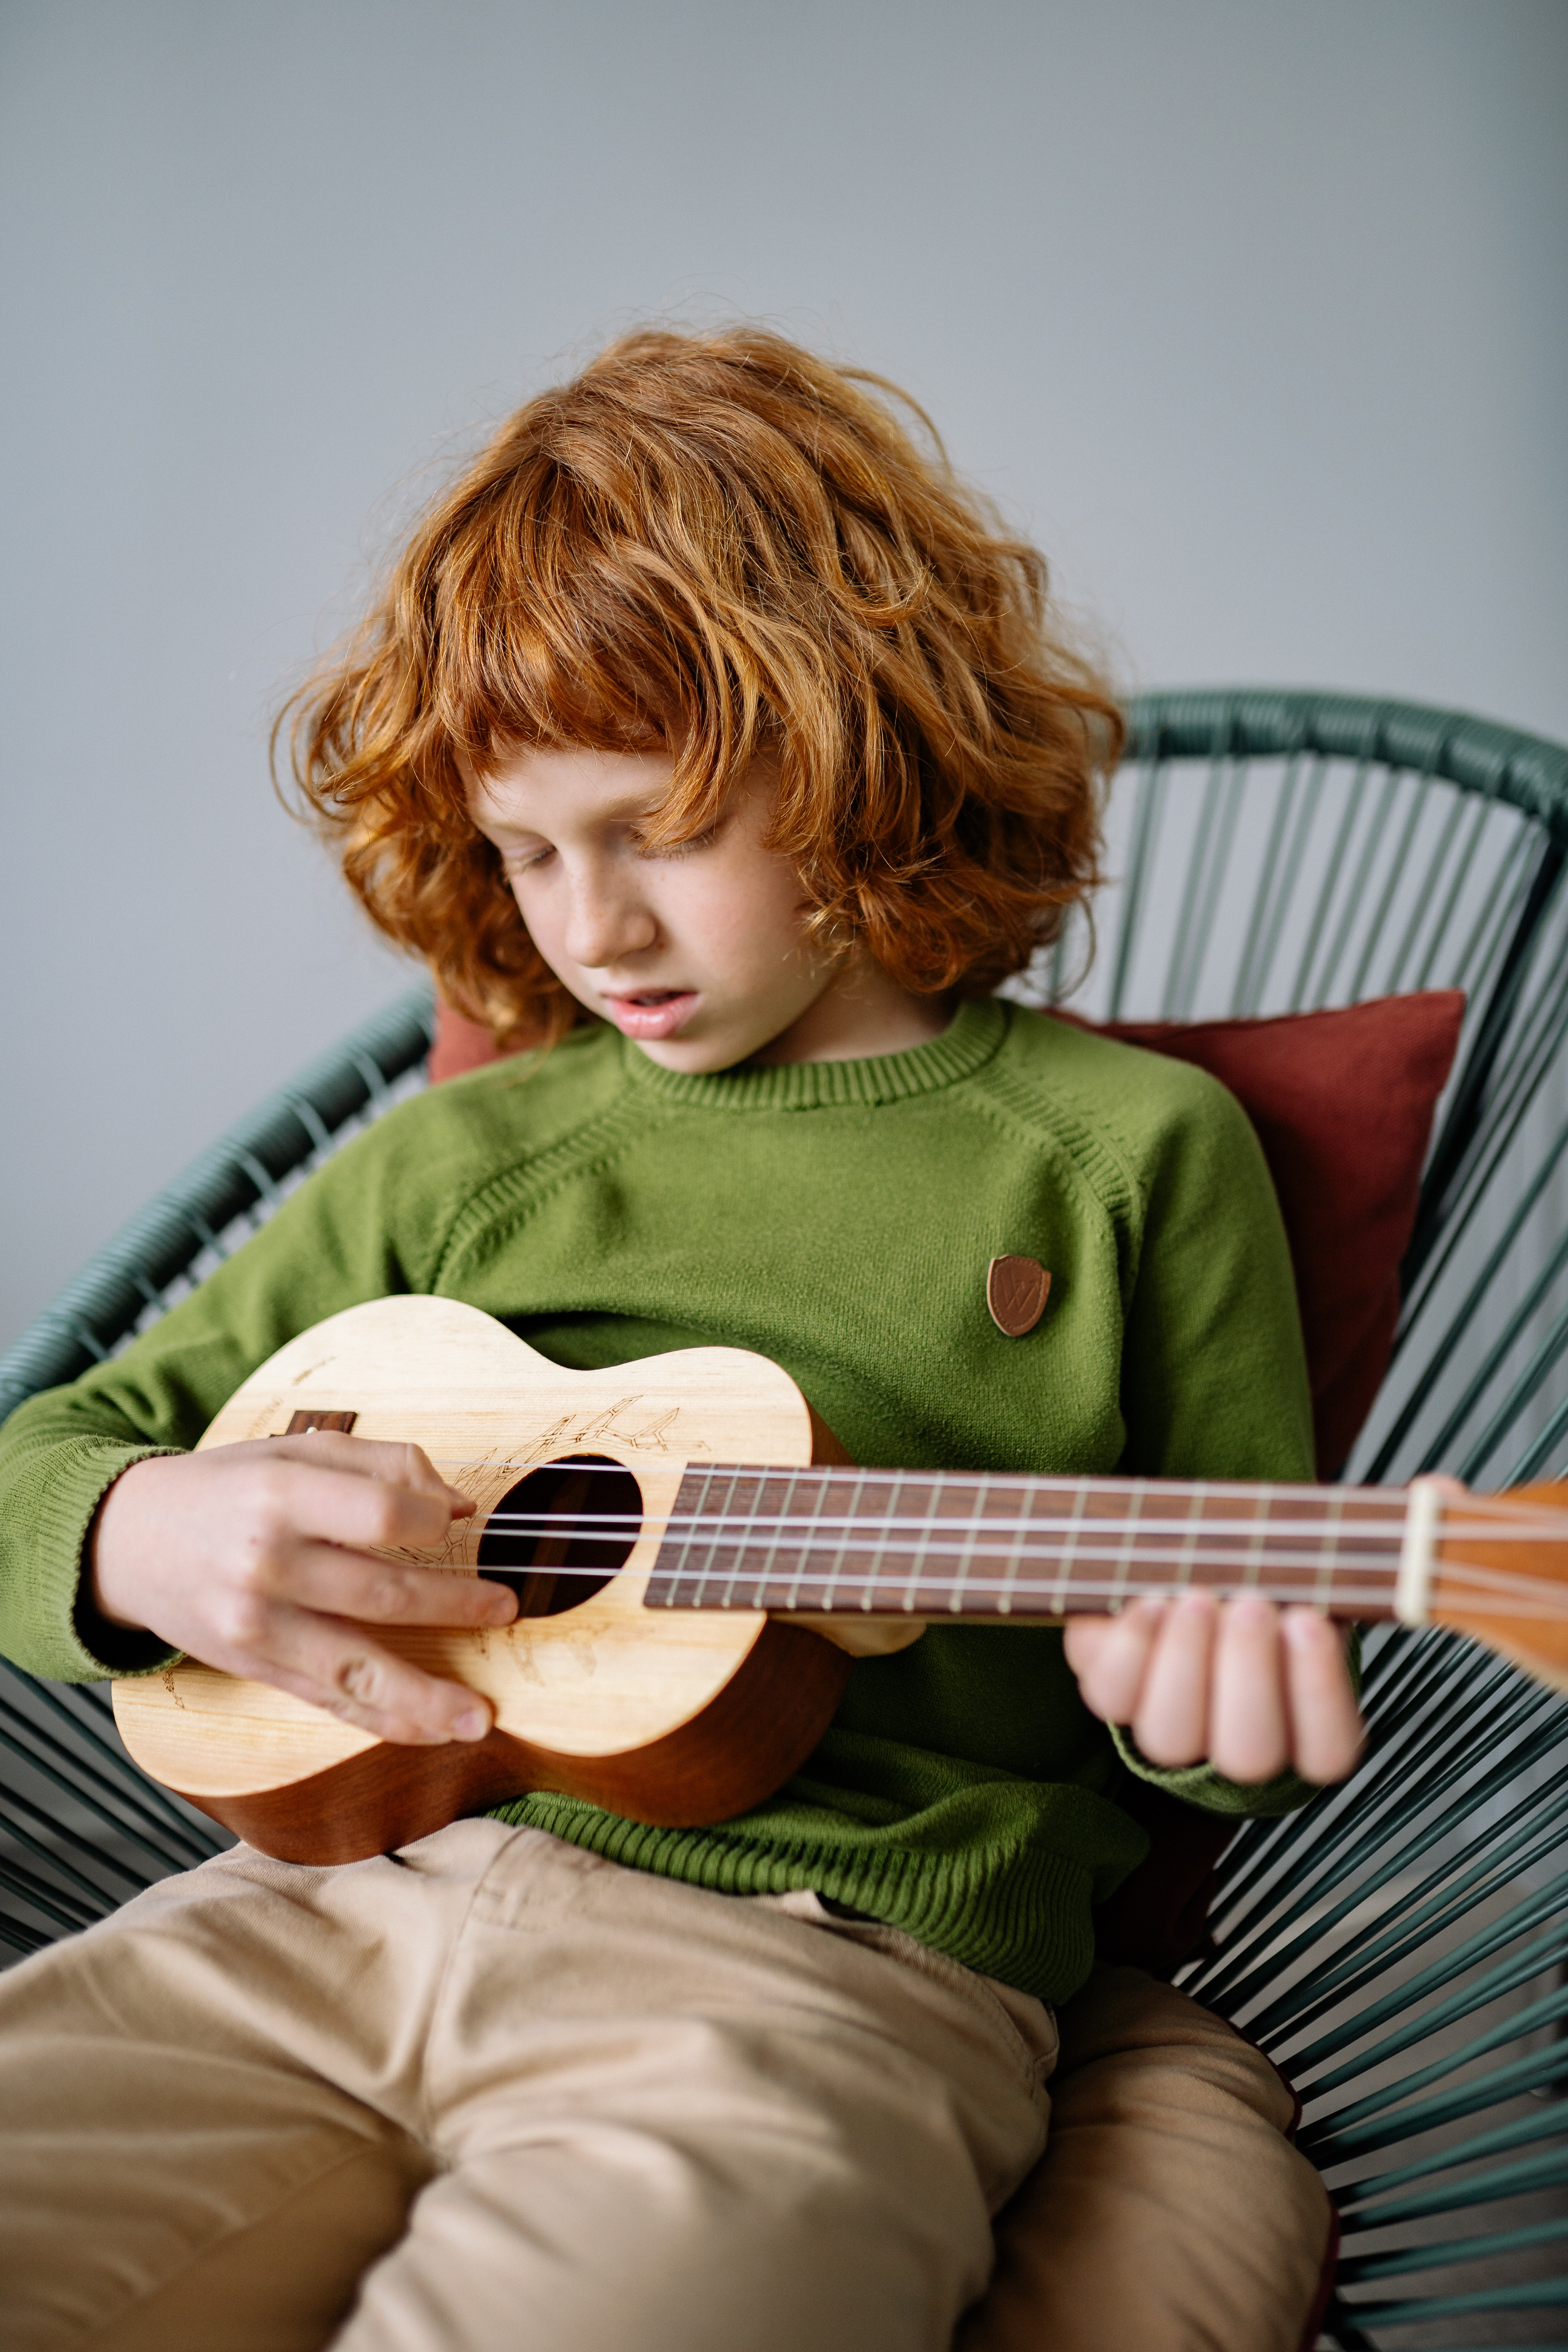 Does My Child Have Bipolar Disorder?